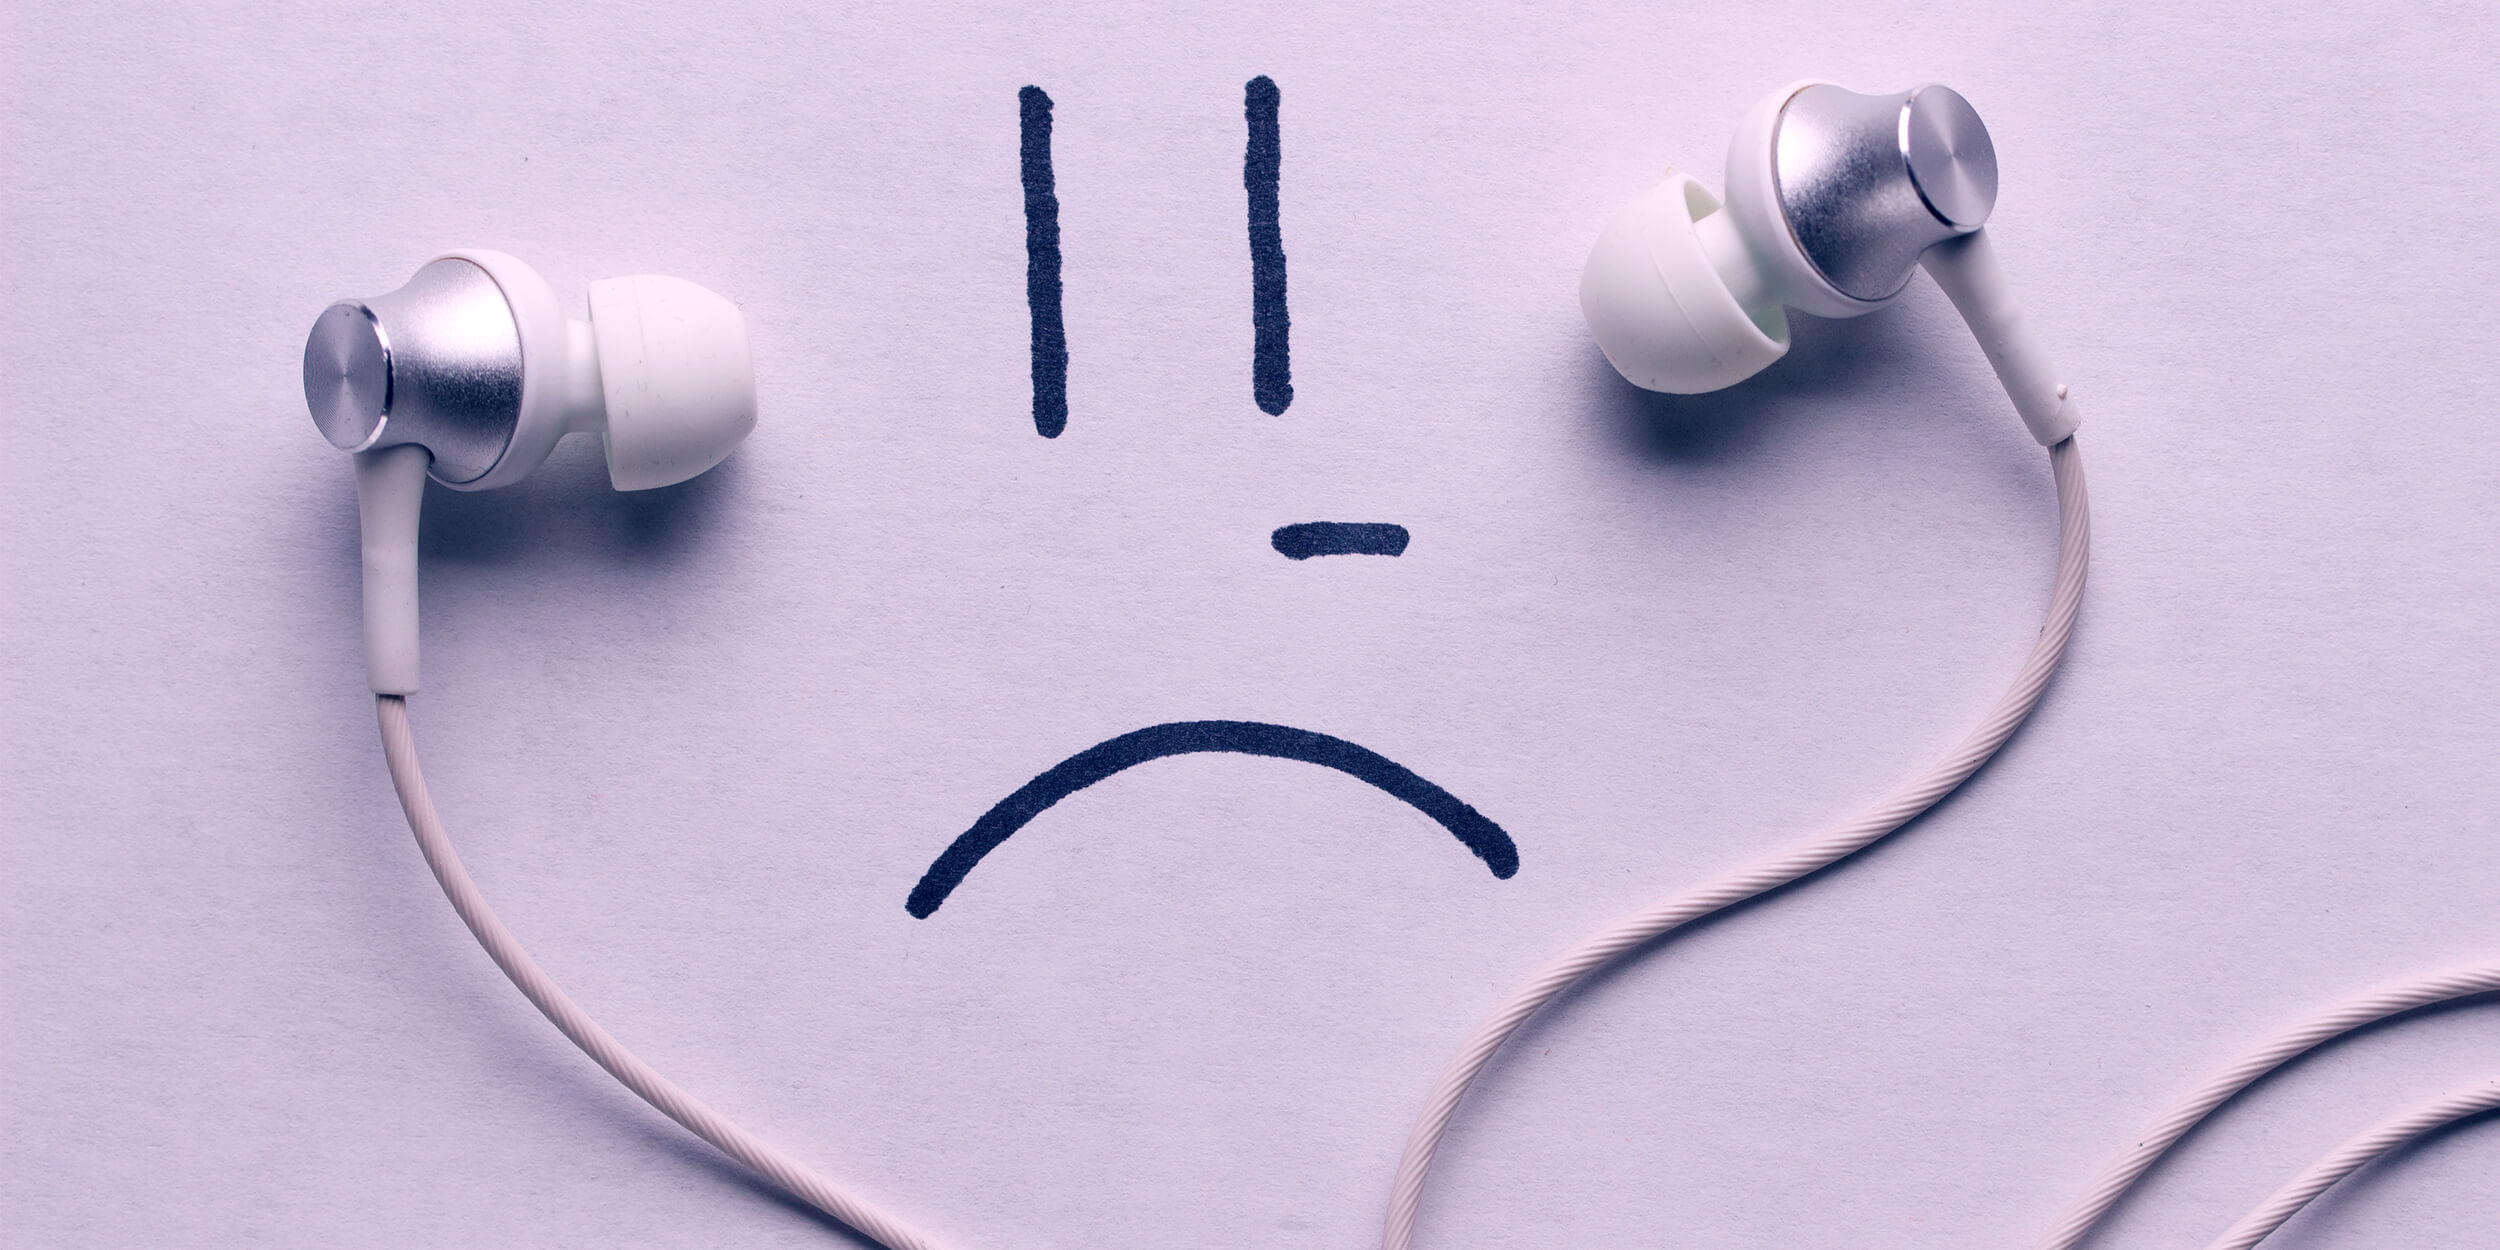 'My Headphones' Meme: Our Music Is Sadder Than We Look